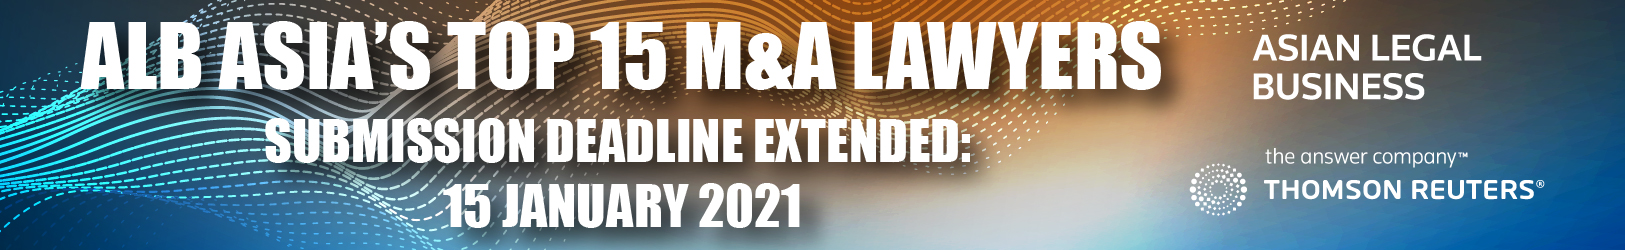 ALB Asia's Top M&A Lawyers 2021